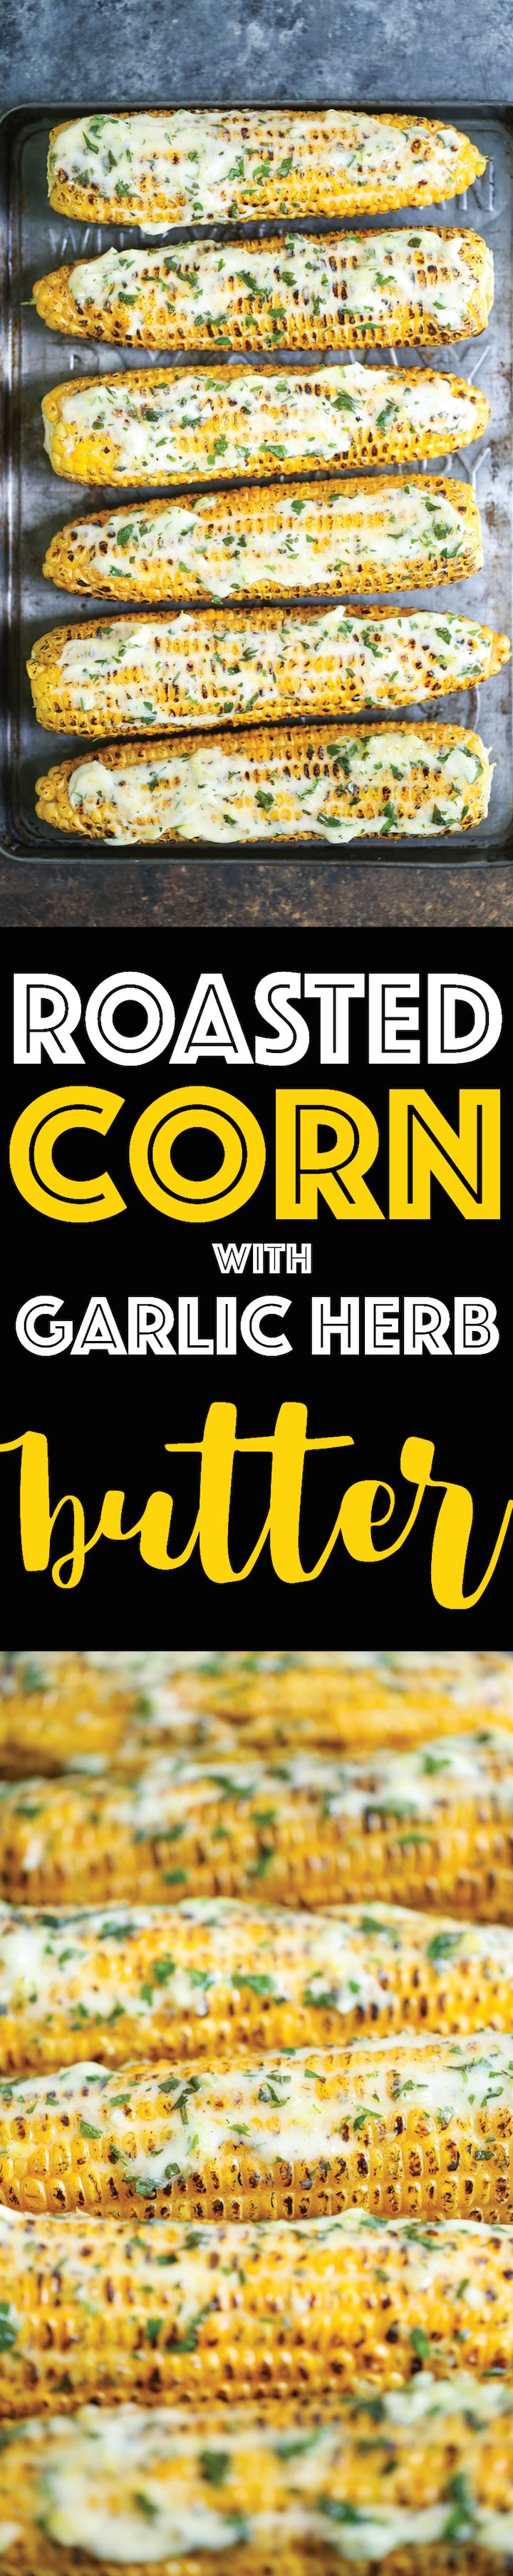 Roasted Corn with Garlic Herb Butter - This garlic herb butter is a game changer! You'll want it on everything! And it comes together in less than 5 min!!!